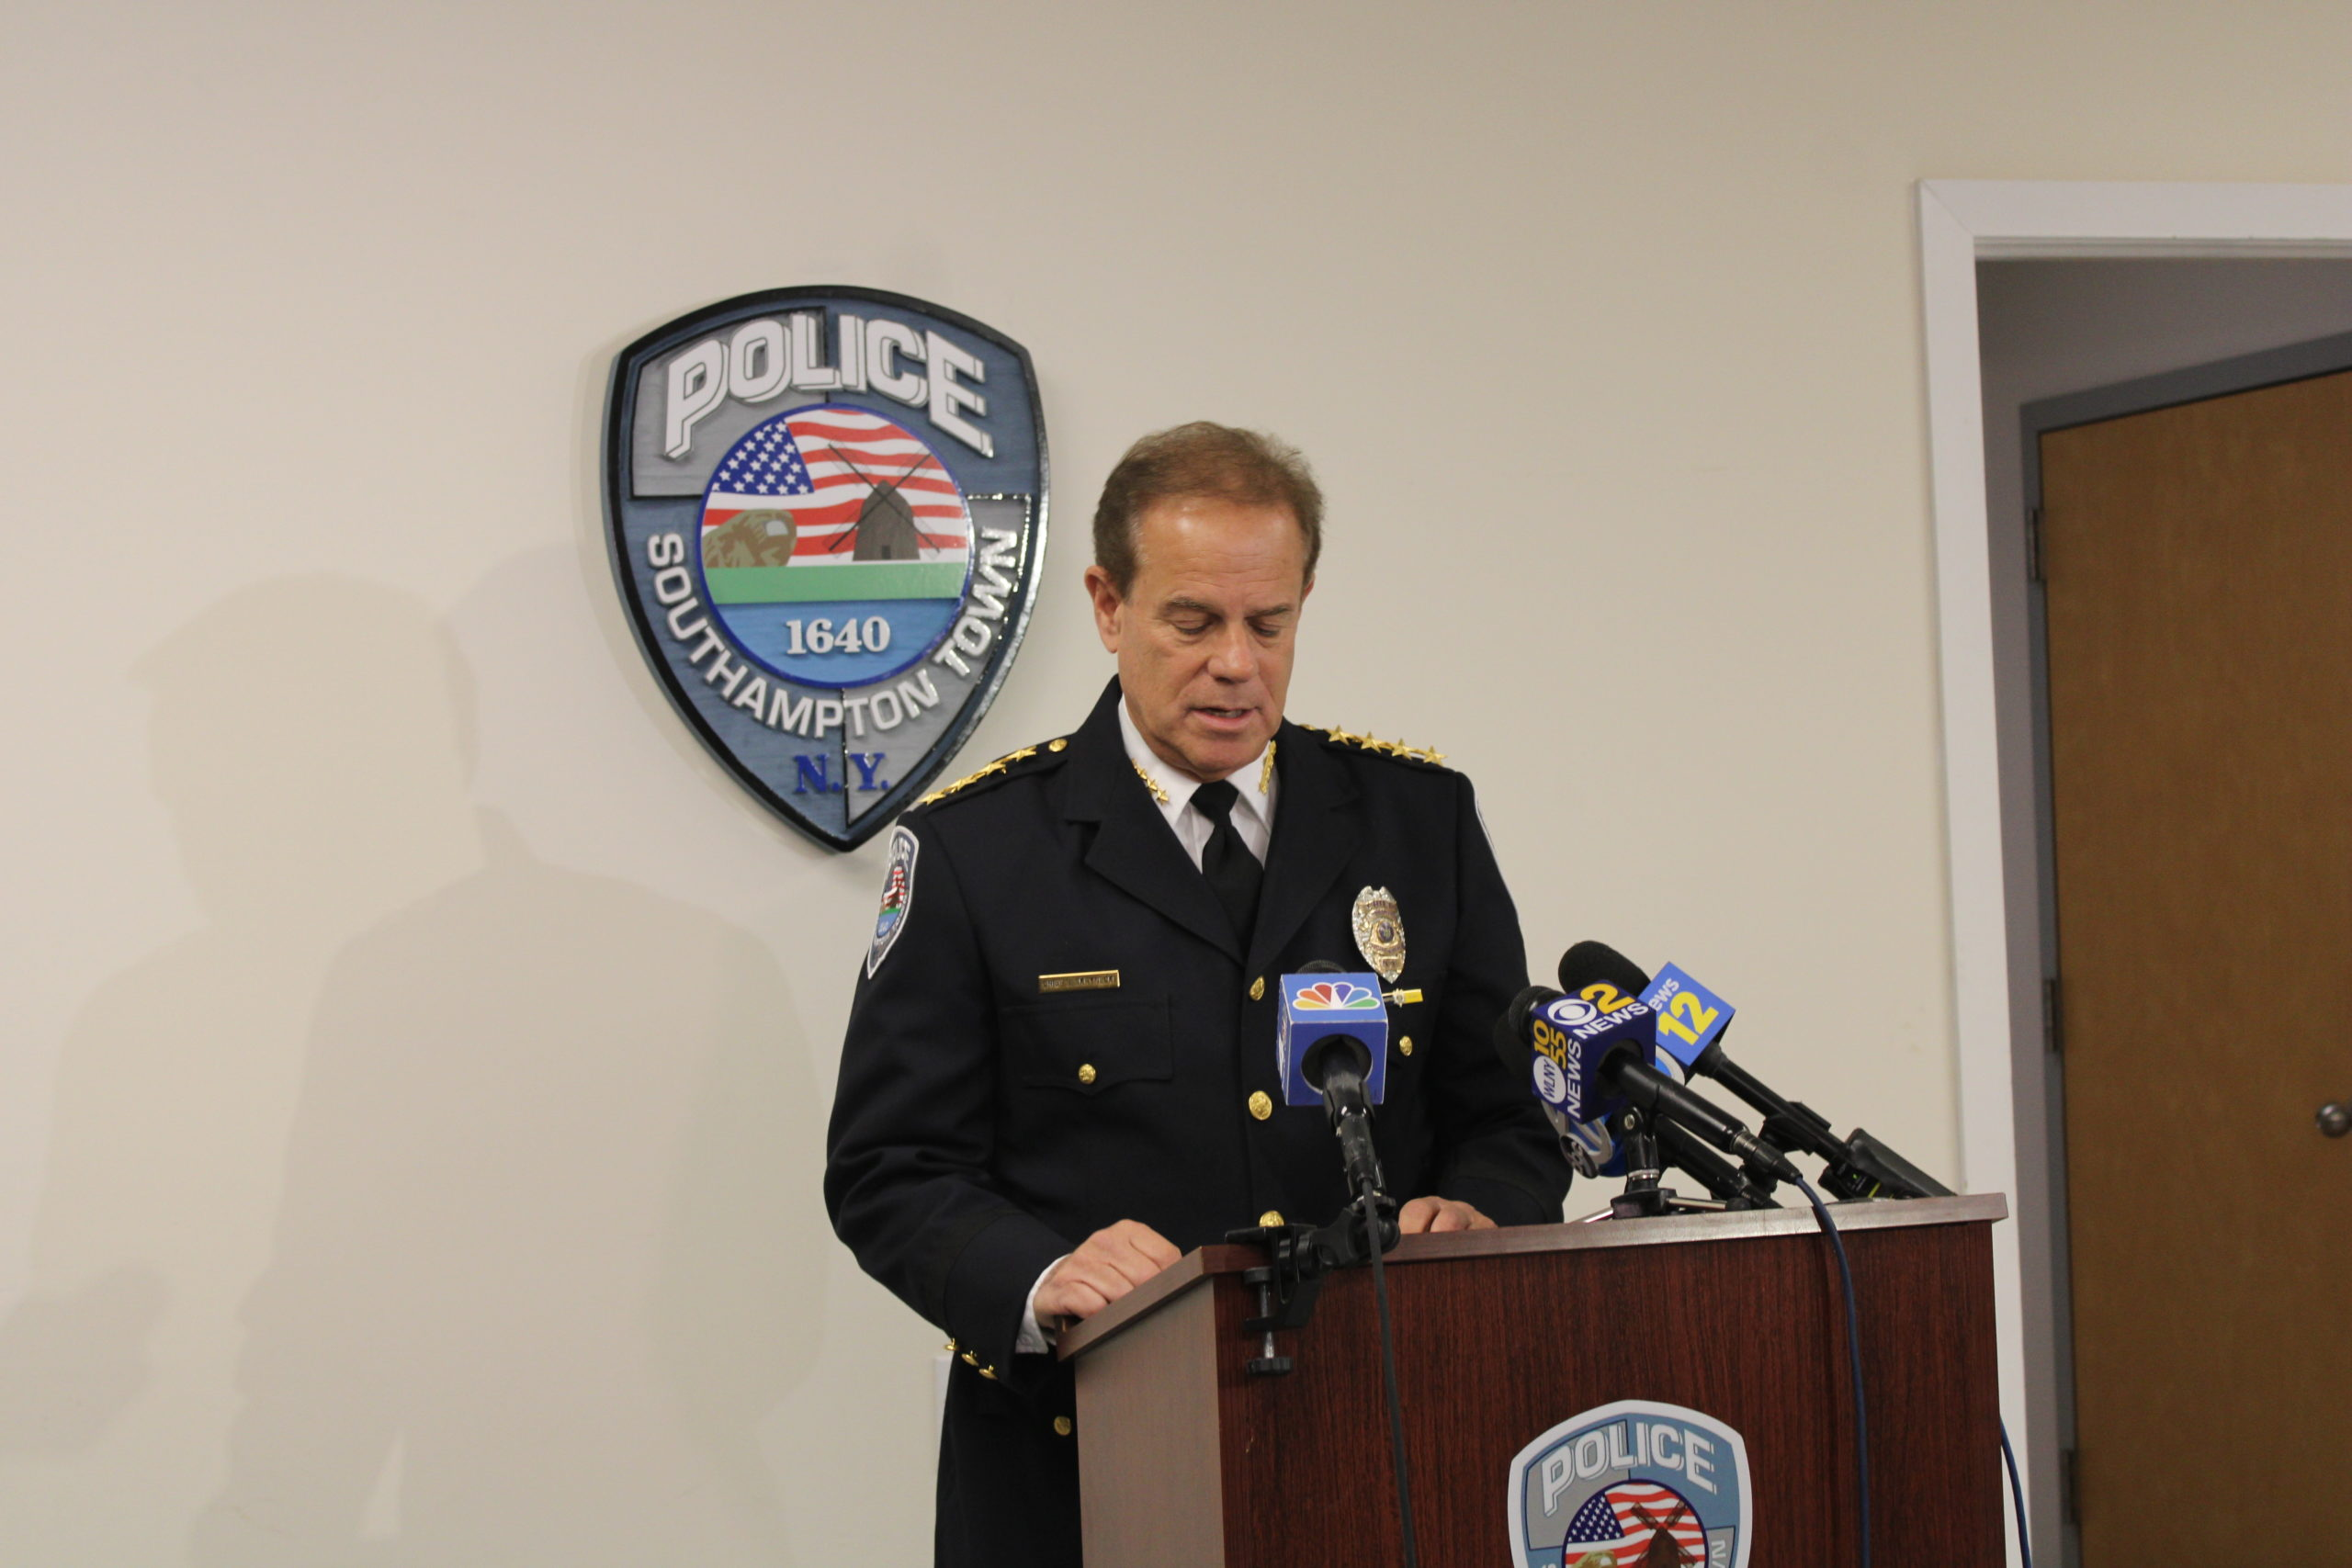 Southampton Town Chief of Police Steven Skrynecki at the press conference Thursday morning.